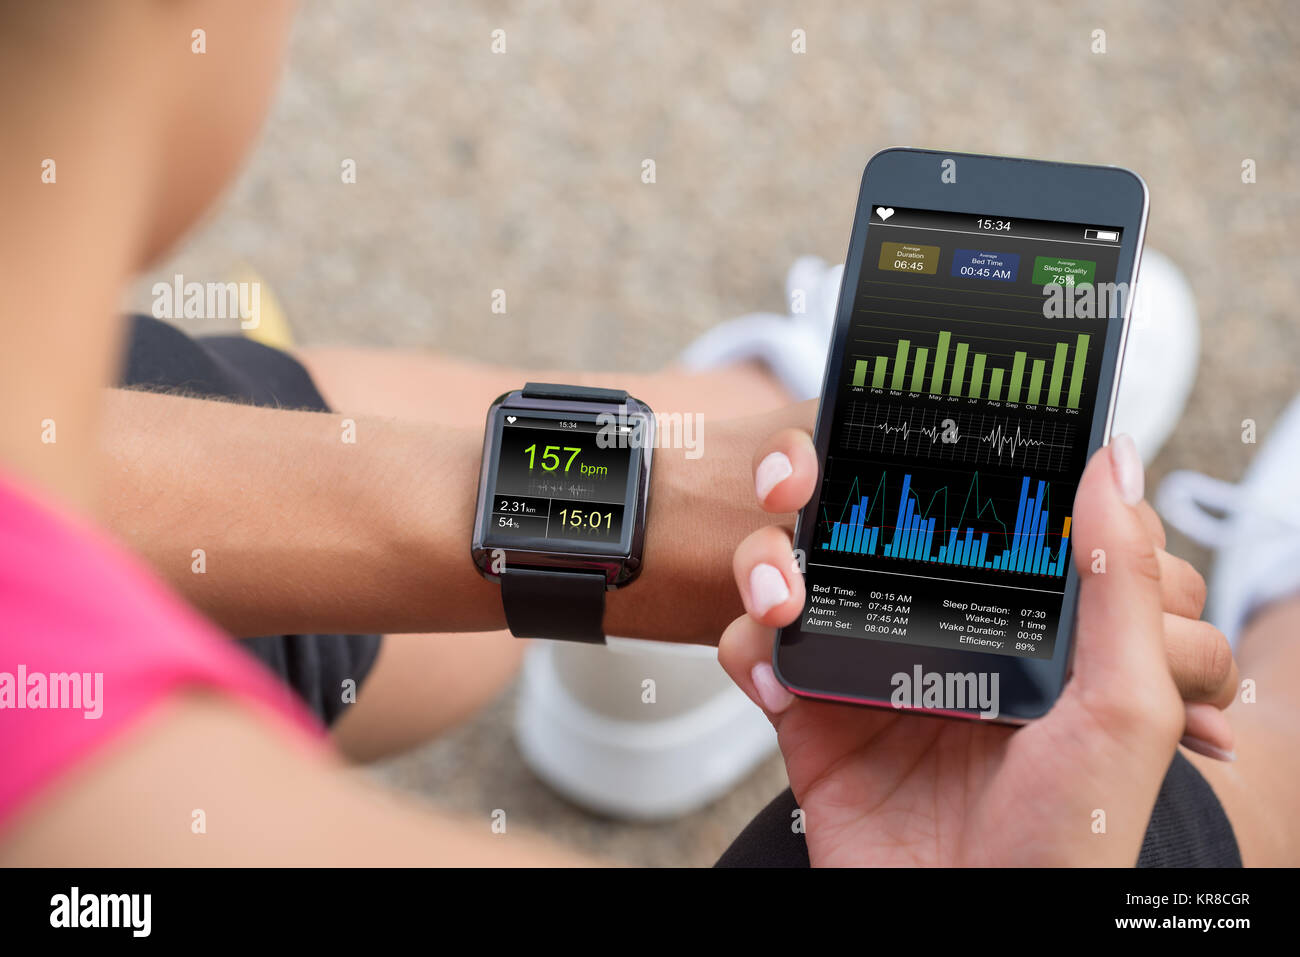 Running Female With Mobile Phone Connected To A Smart Watch - Stock Image